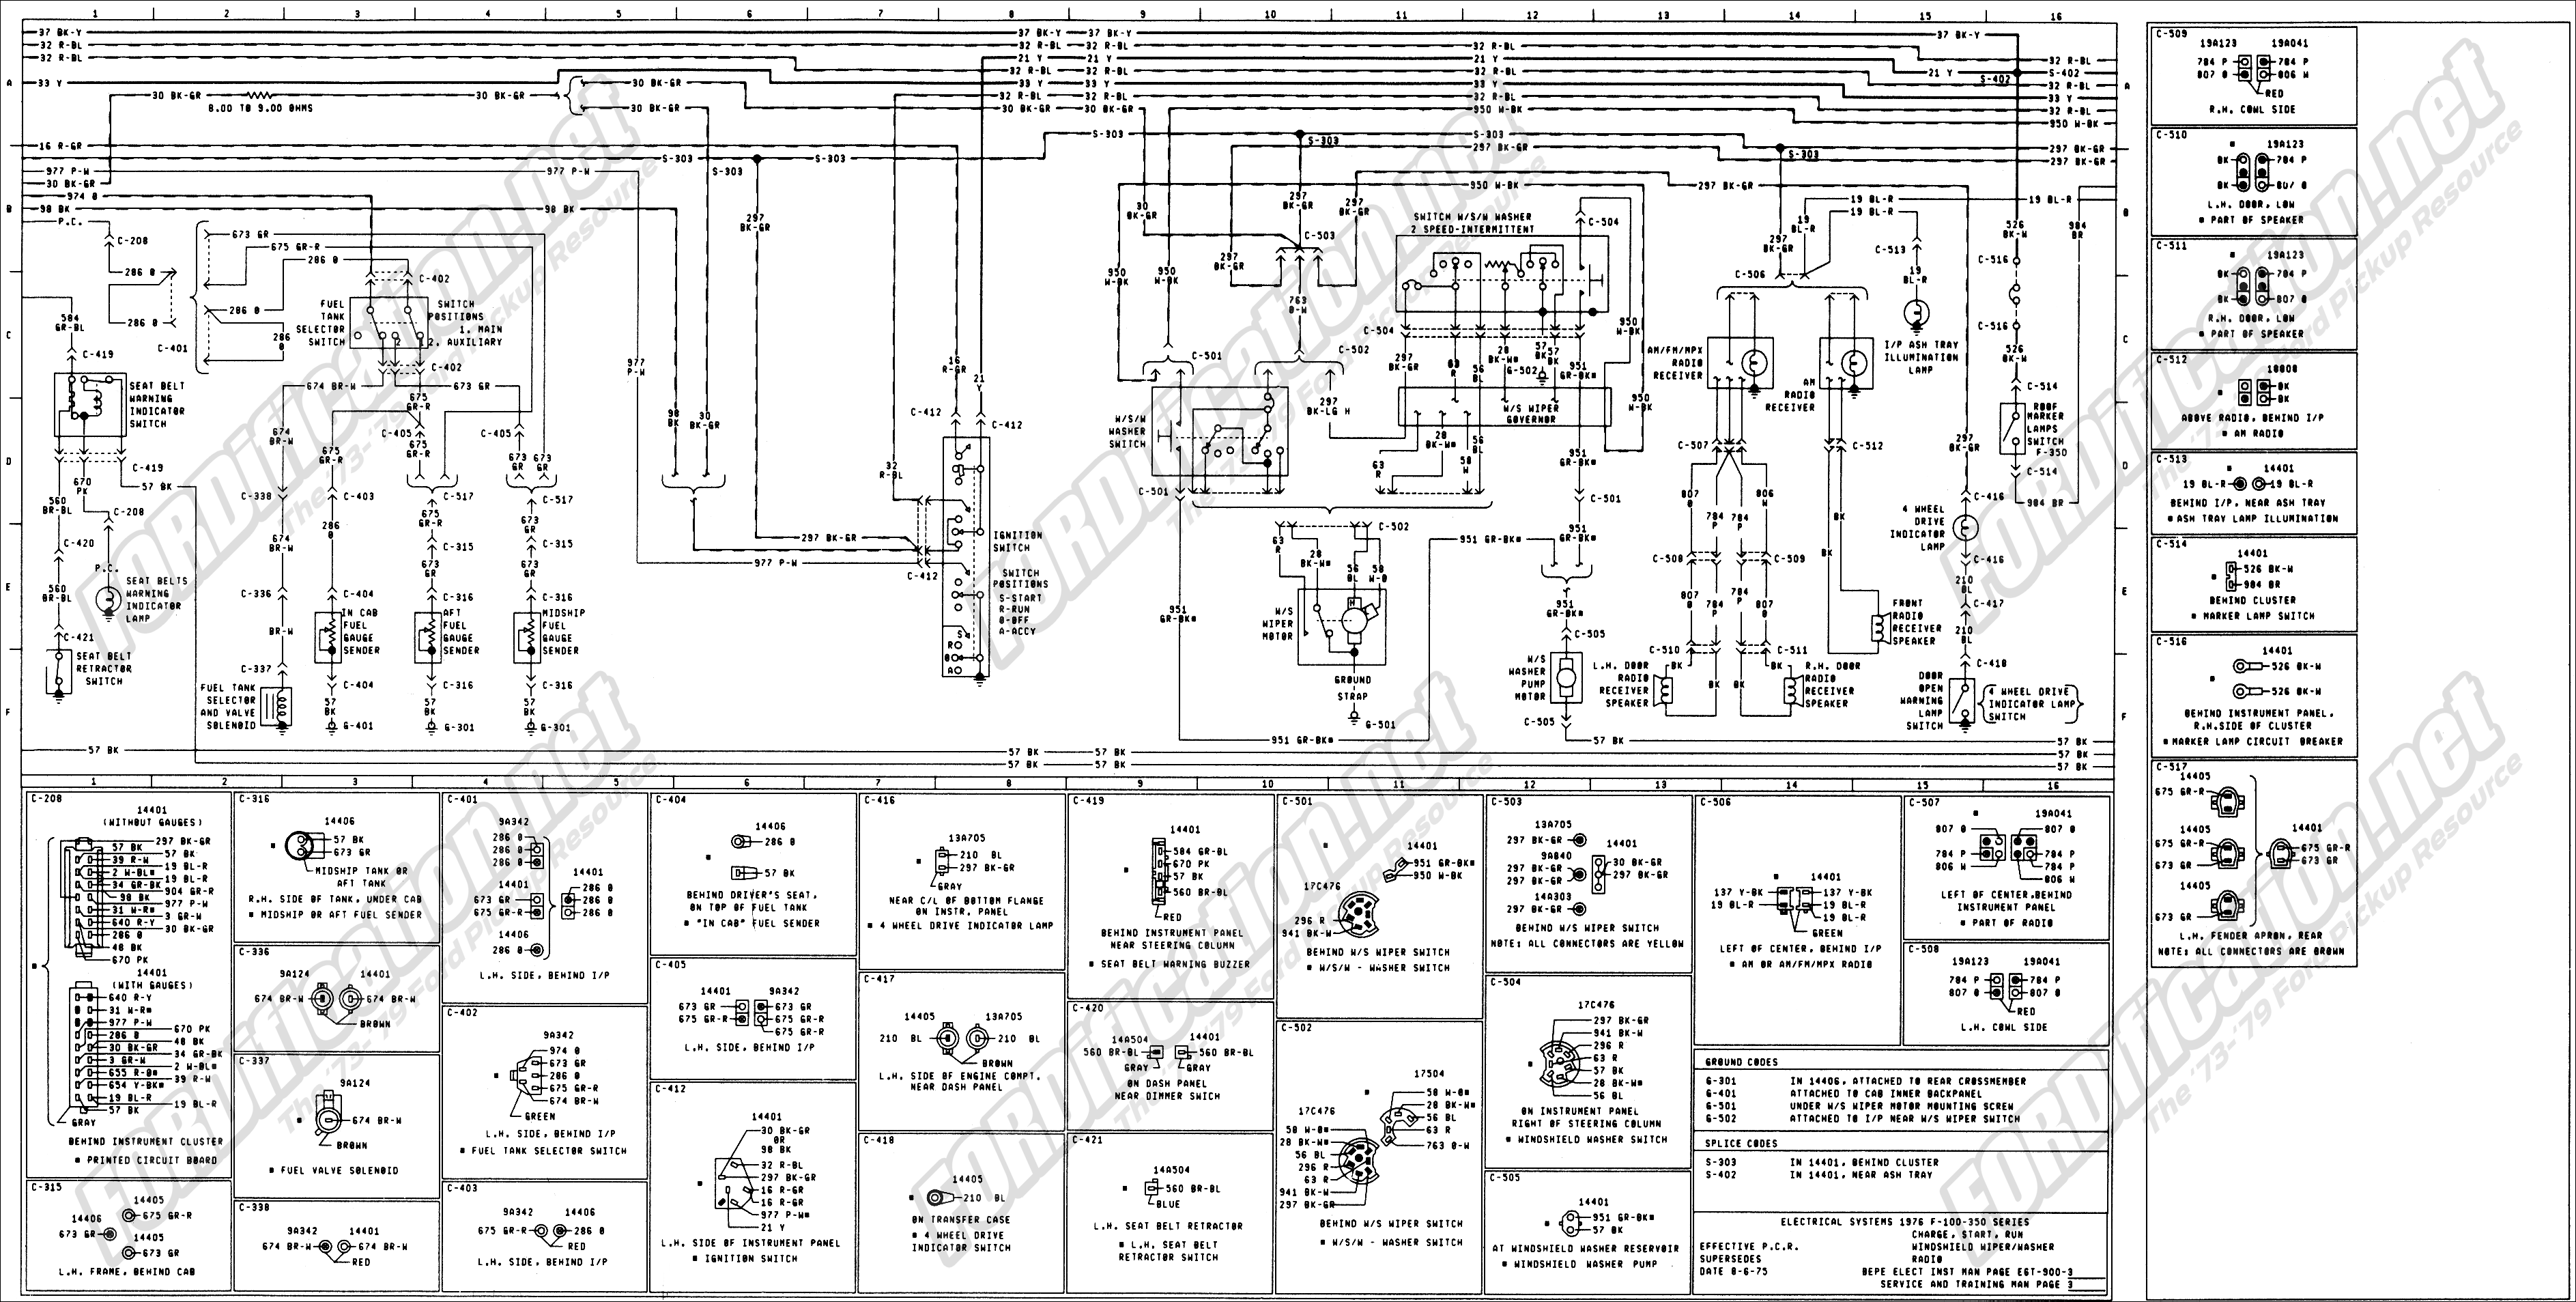 2012 Ford F250 Wiring Diagram Archive Of Automotive Super Duty Headlight F150 Instrument Cluster Simple Rh David Huggett Co Uk